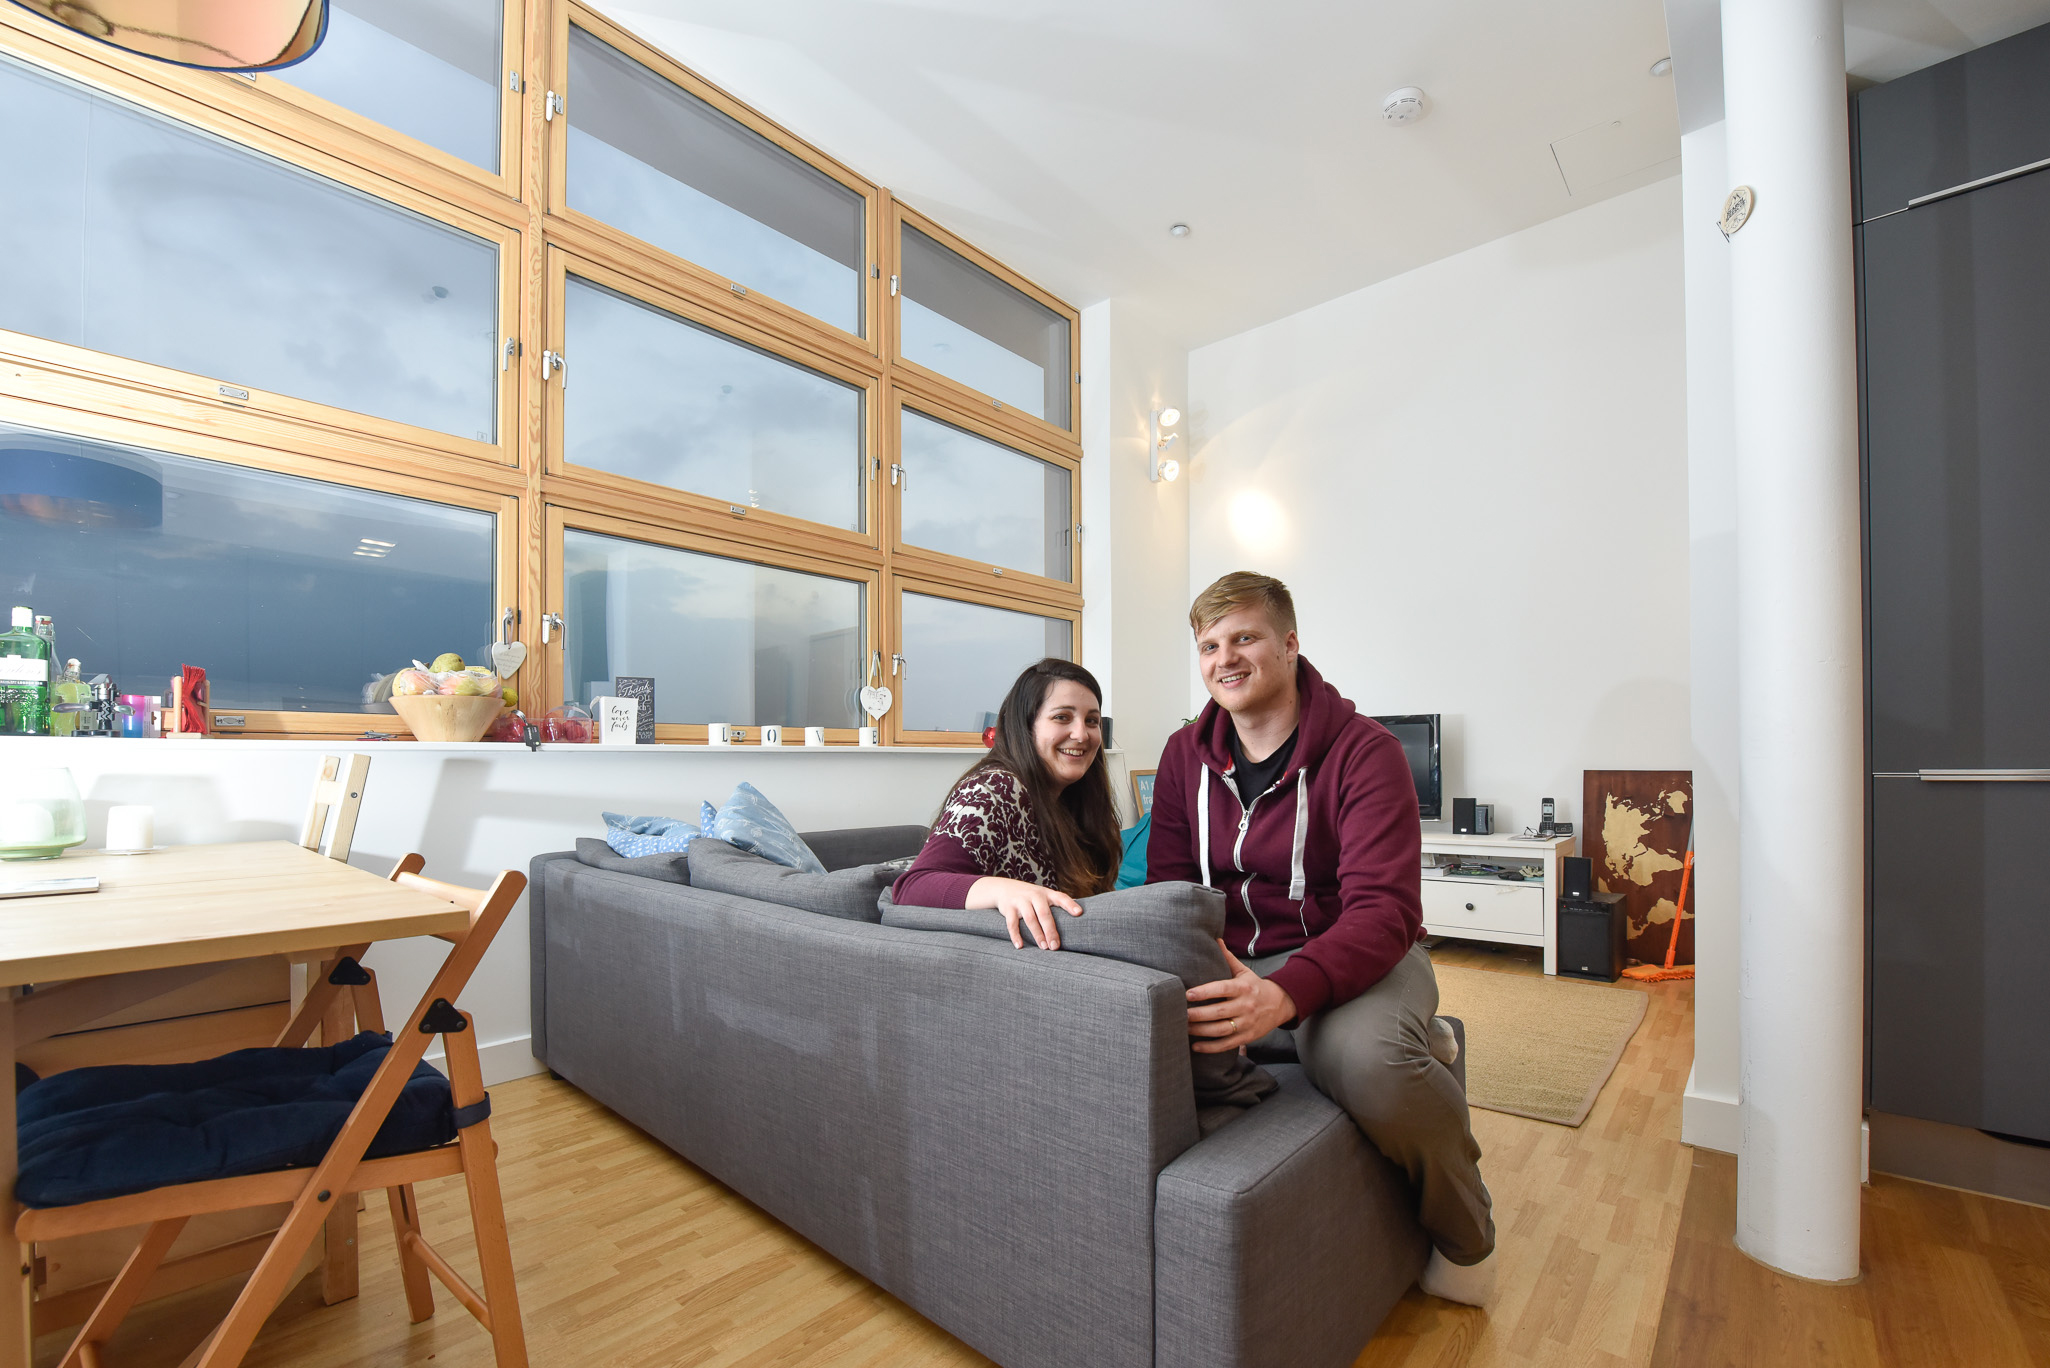 Maths teacher Naomi Bell, 28, is delighted with her flat which she shares with her husband Nathan.